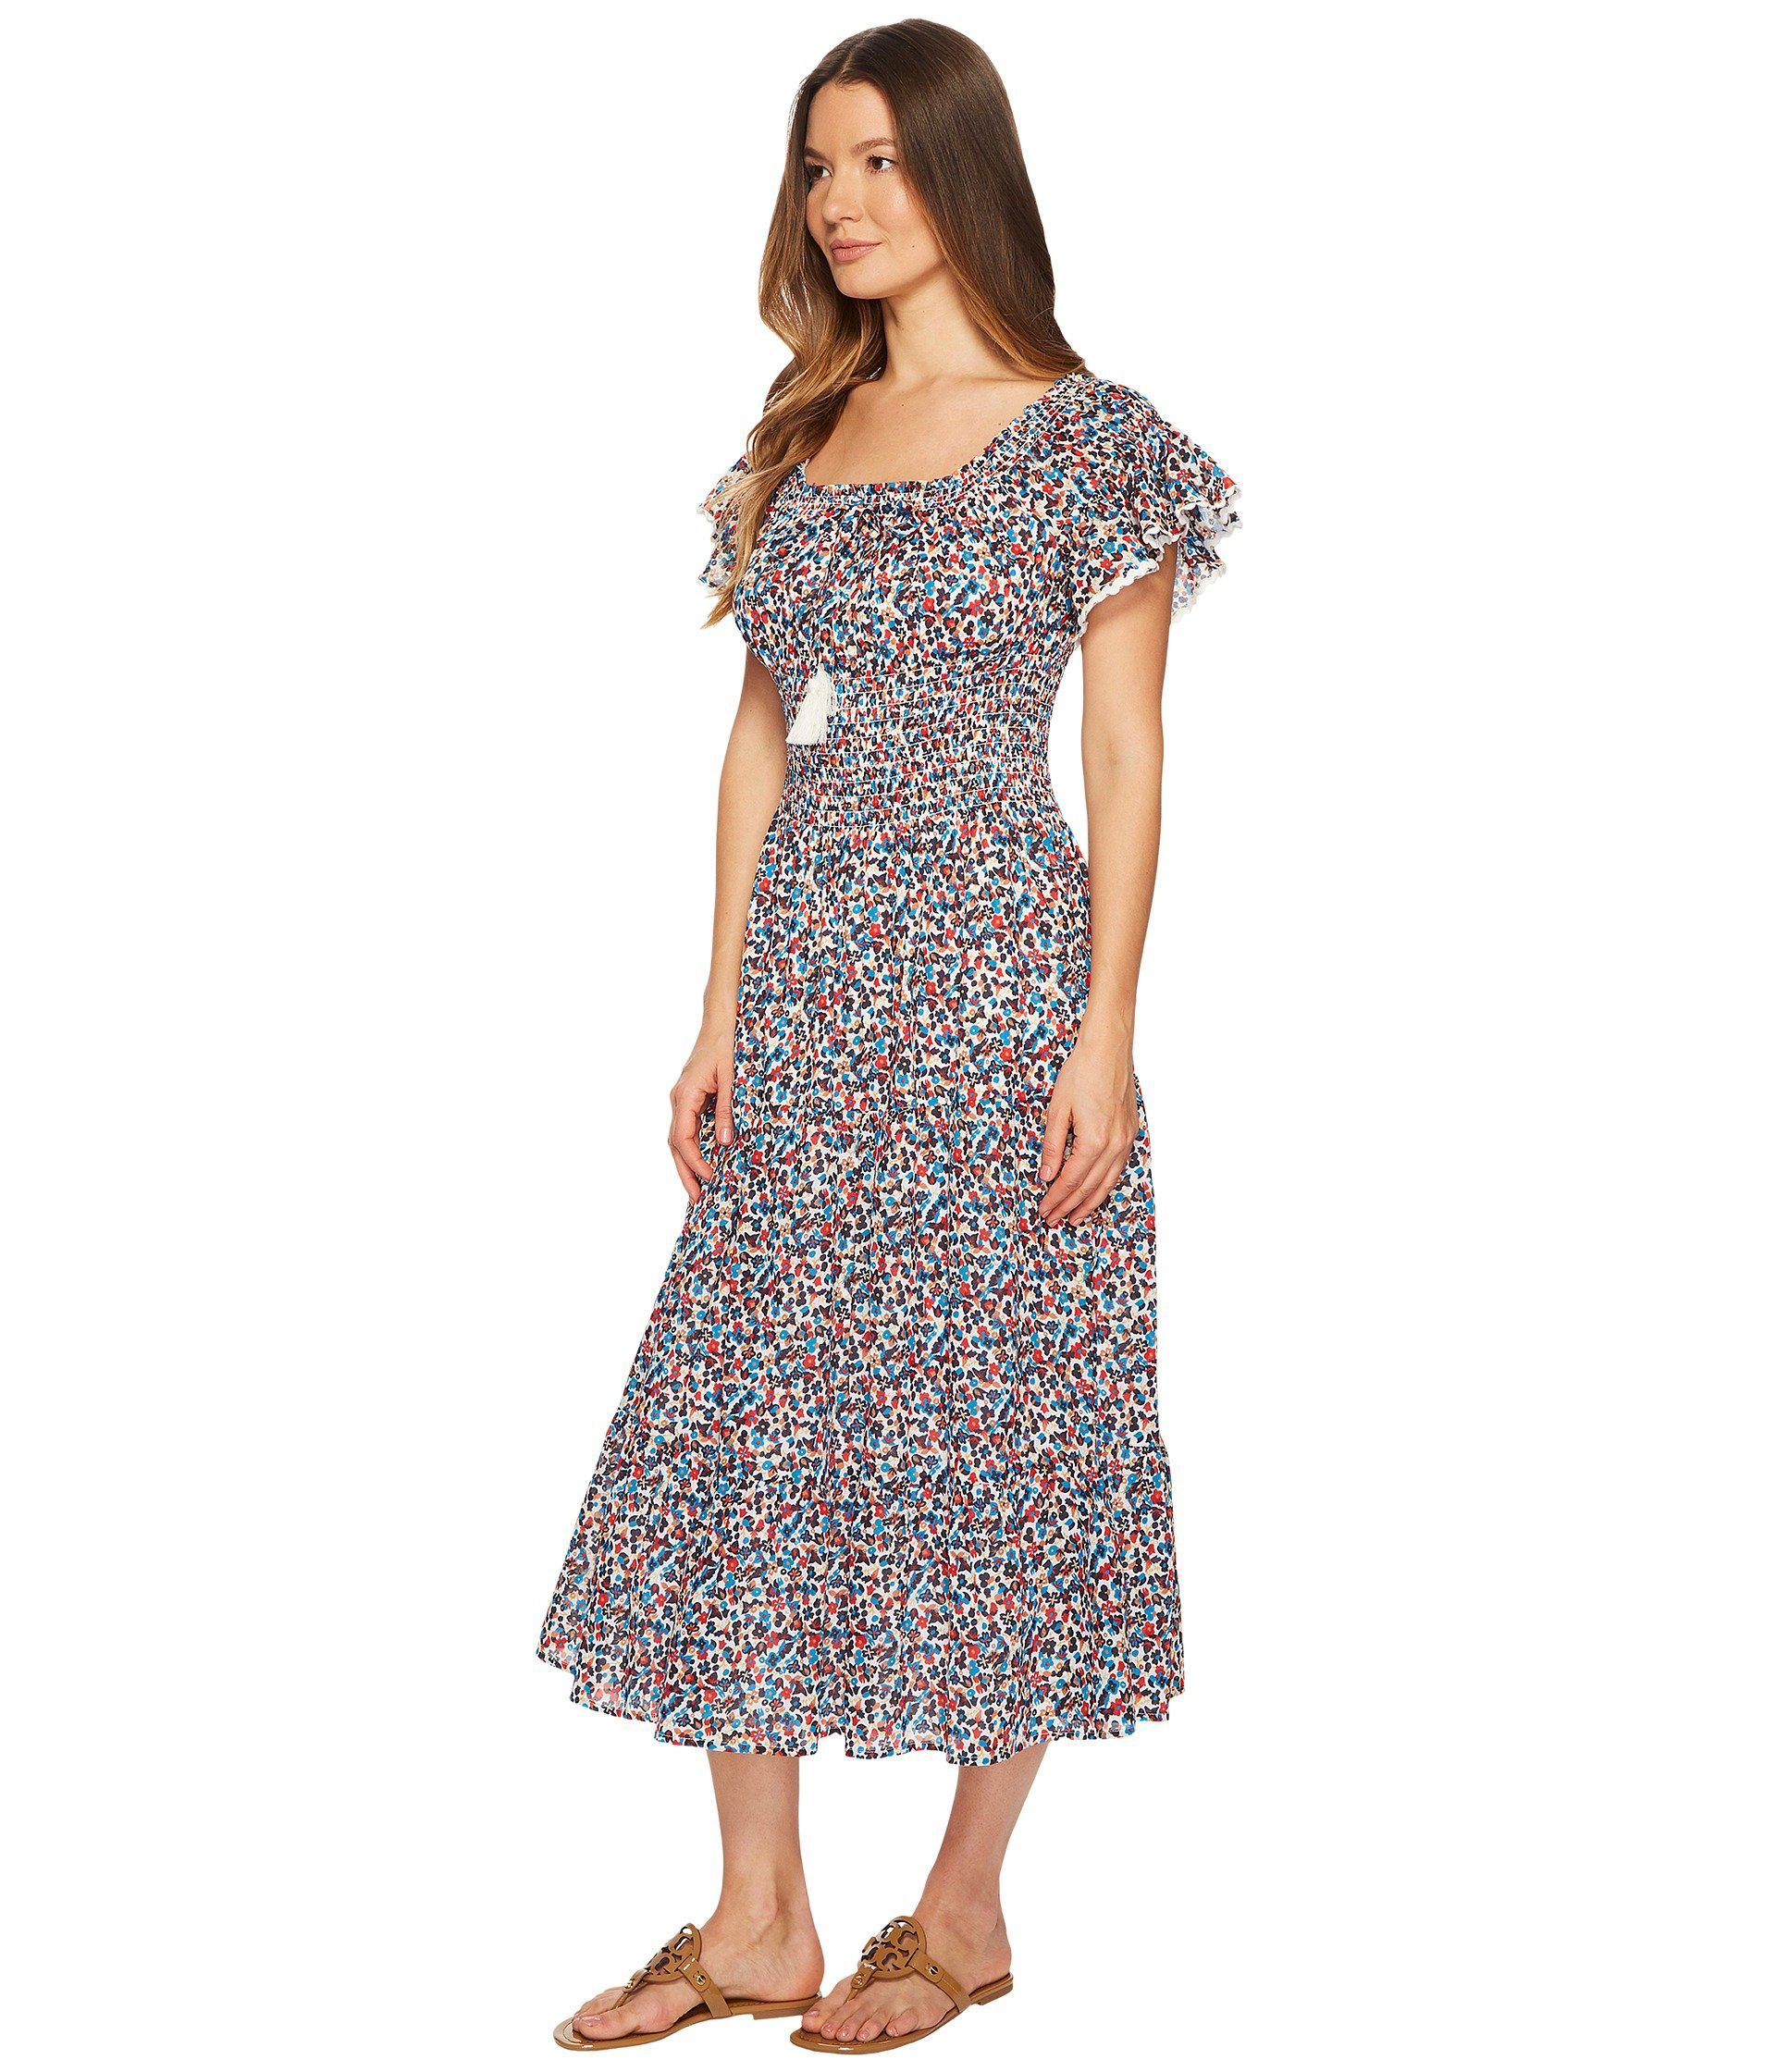 2d2a684d39 Lyst - Tory Burch Wildflower Smocked Dress Cover-up - Save 43%